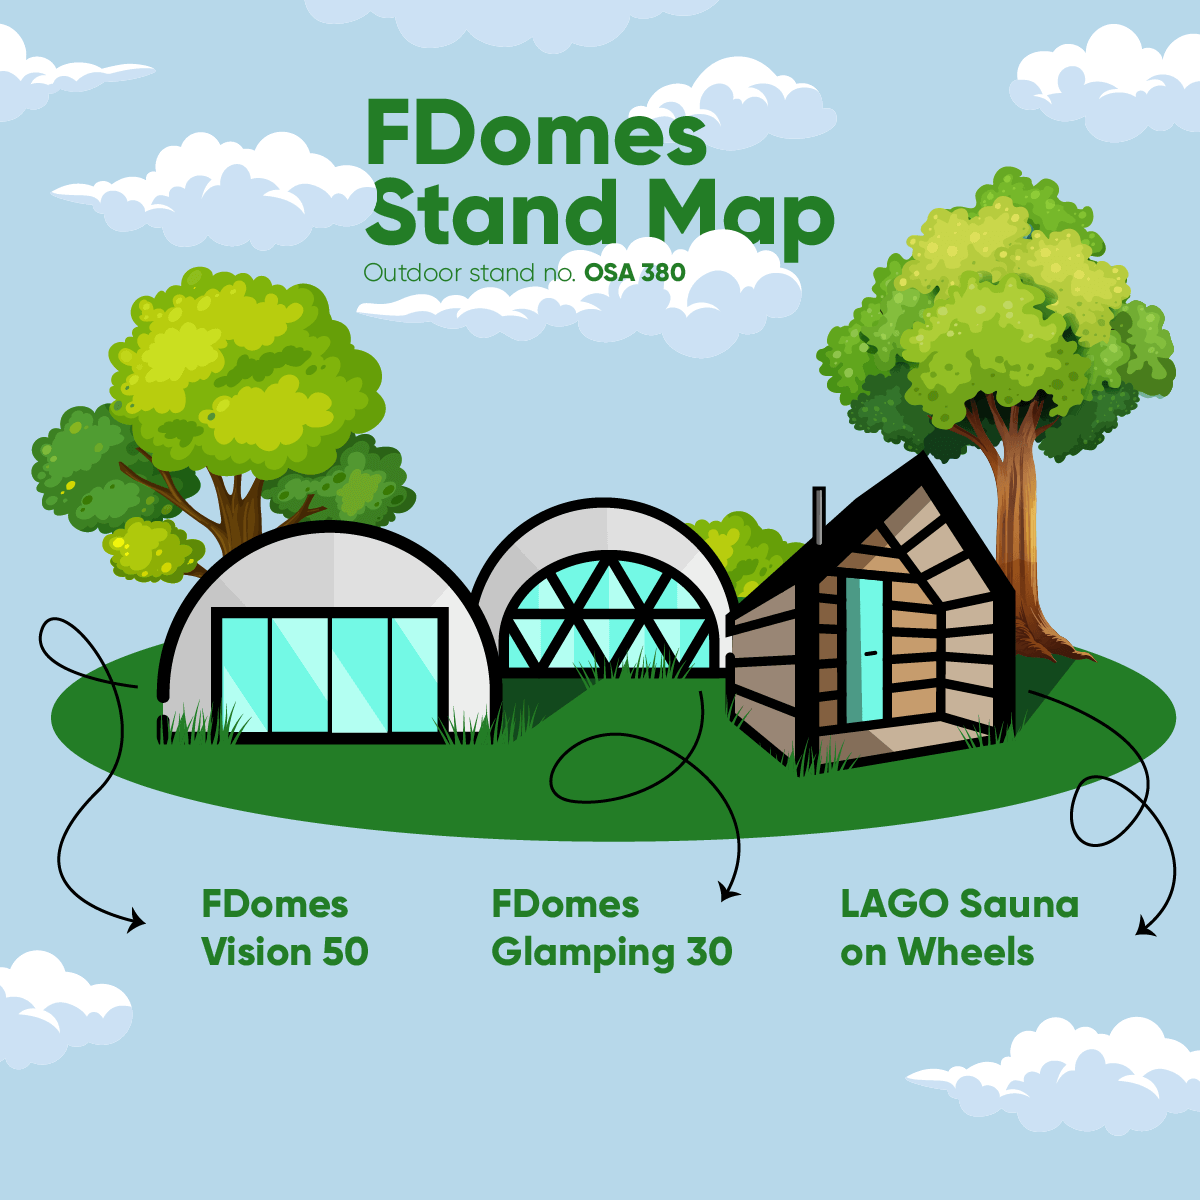 FDomes stand map for The Glamping Show UK